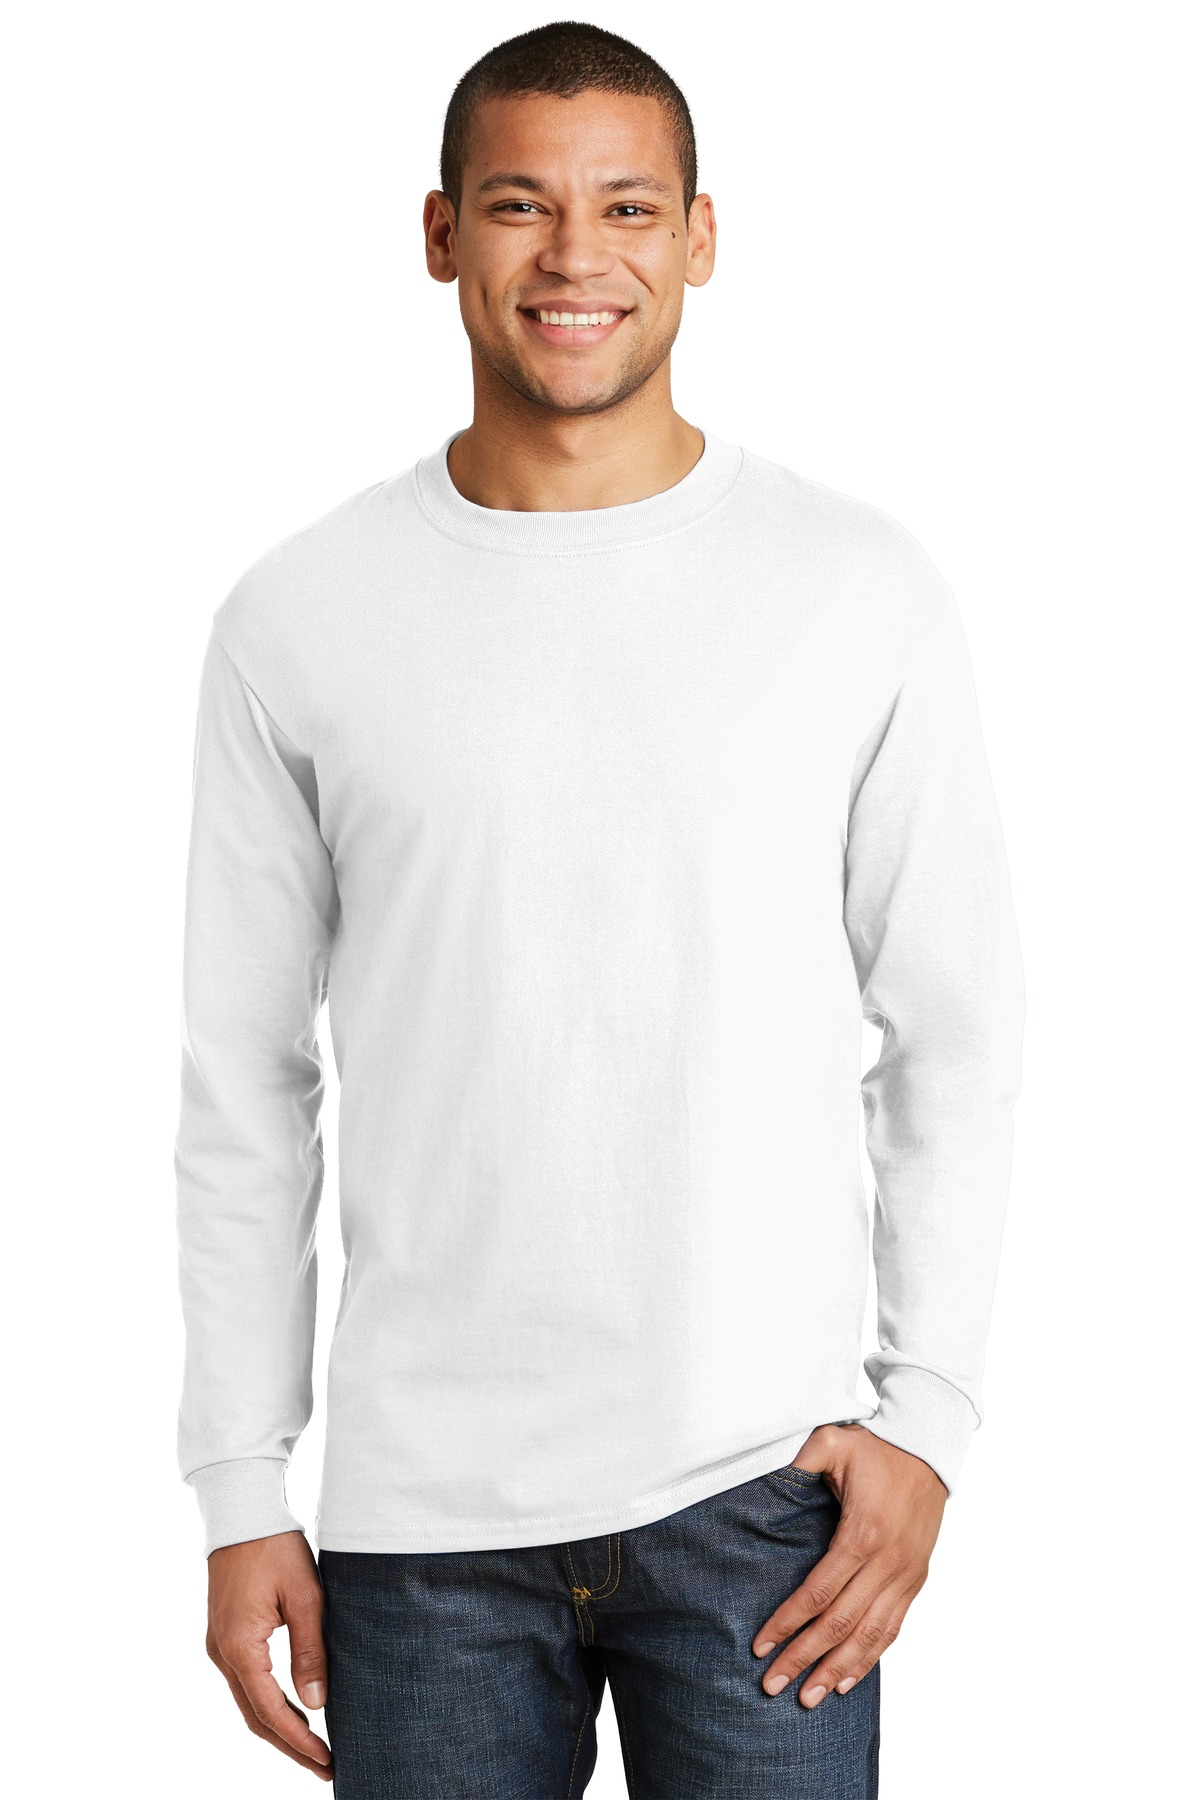 Hanes ®  Beefy-T ®  -  100% Cotton Long Sleeve T-Shirt.  5186 - White